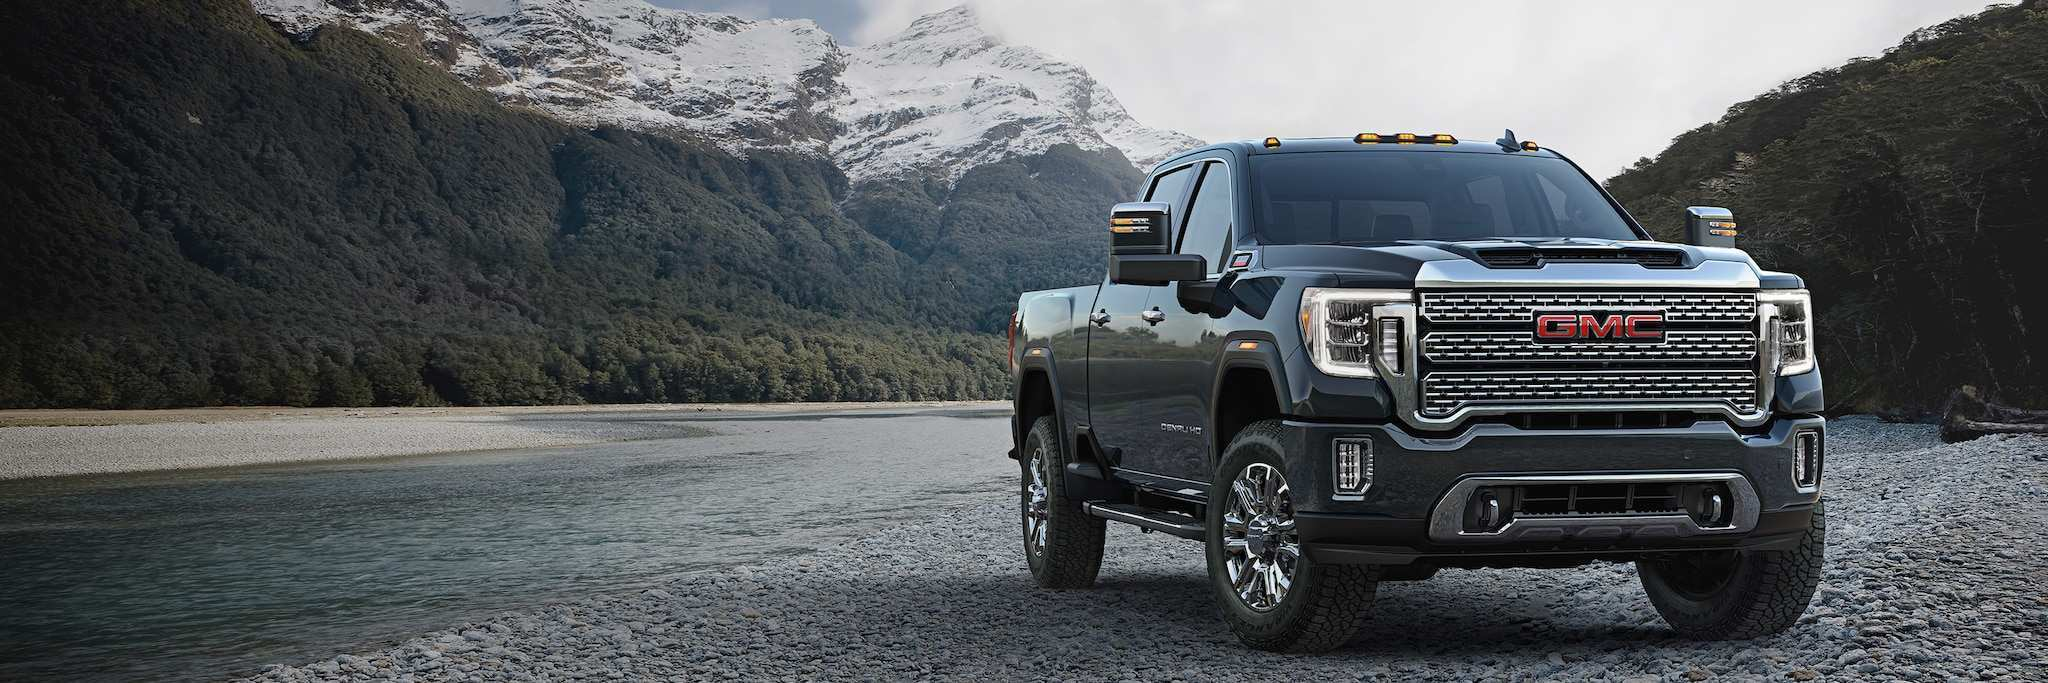 32 New Gmc Sierra 2020 Price Spesification